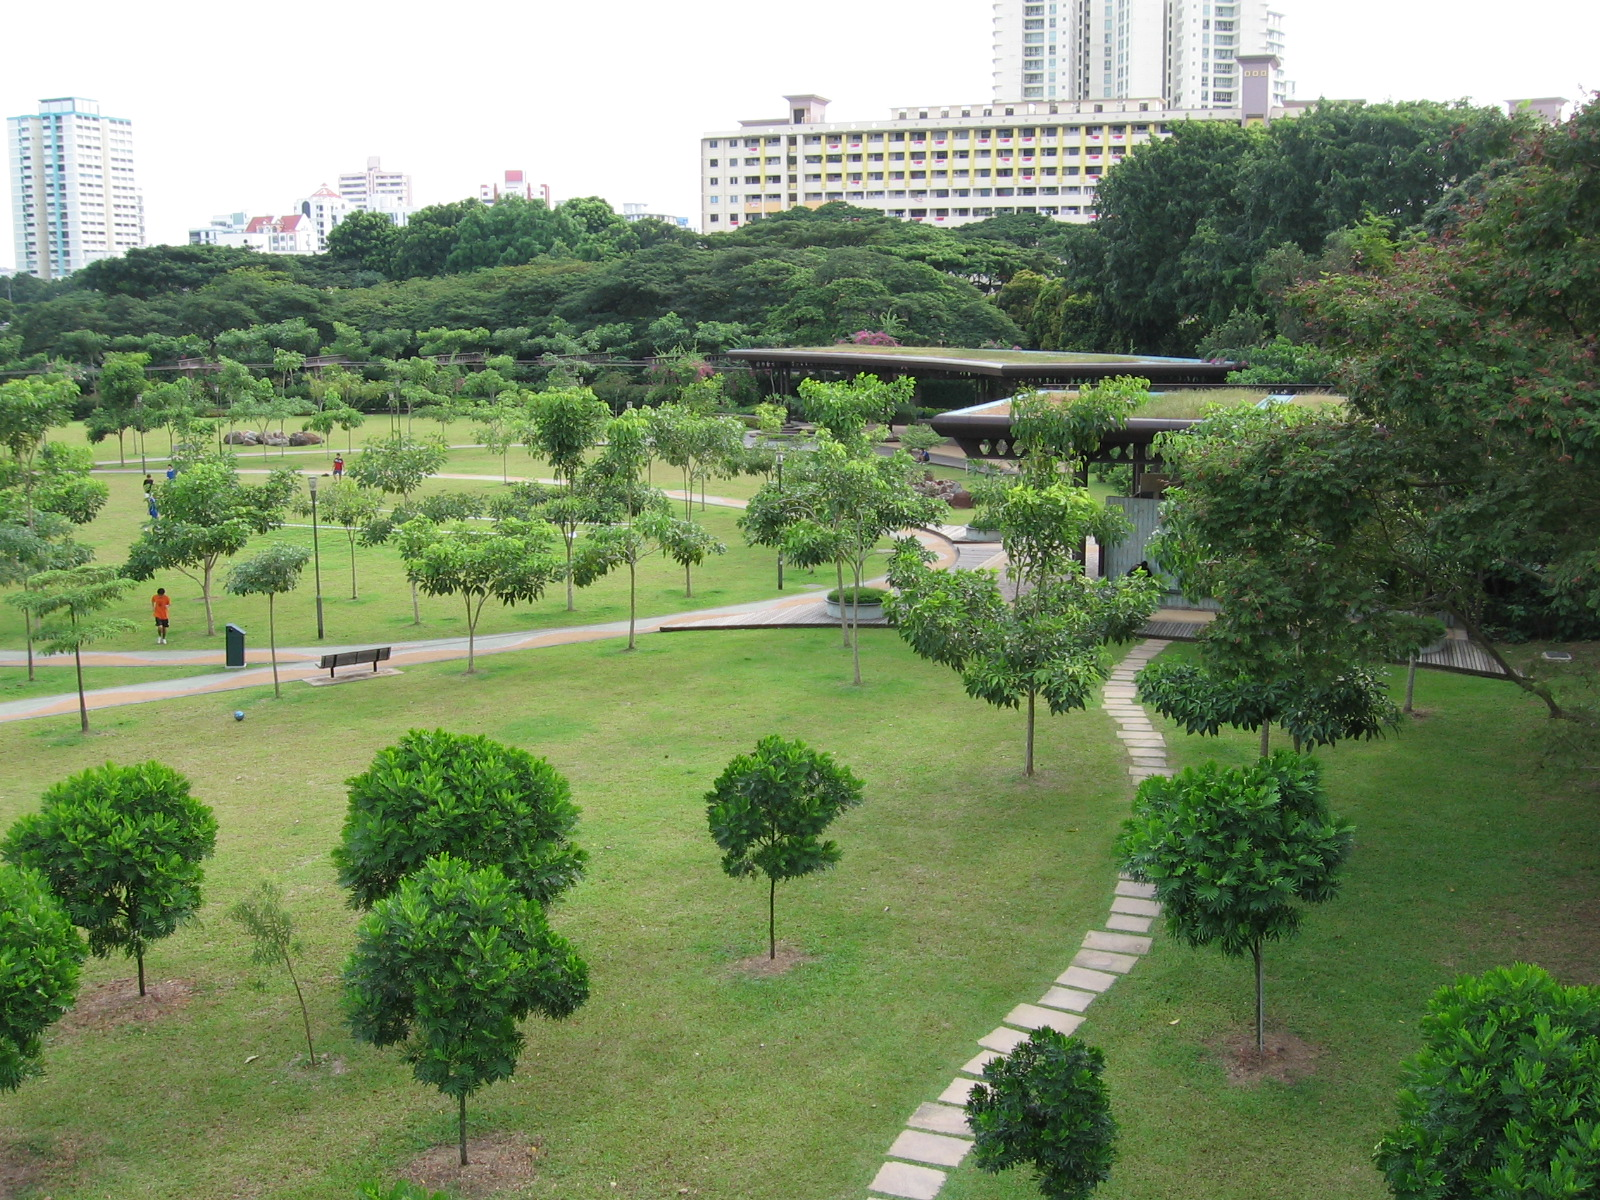 File Toa Payoh Town Park 15 Aug 06 Jpg Wikimedia Commons